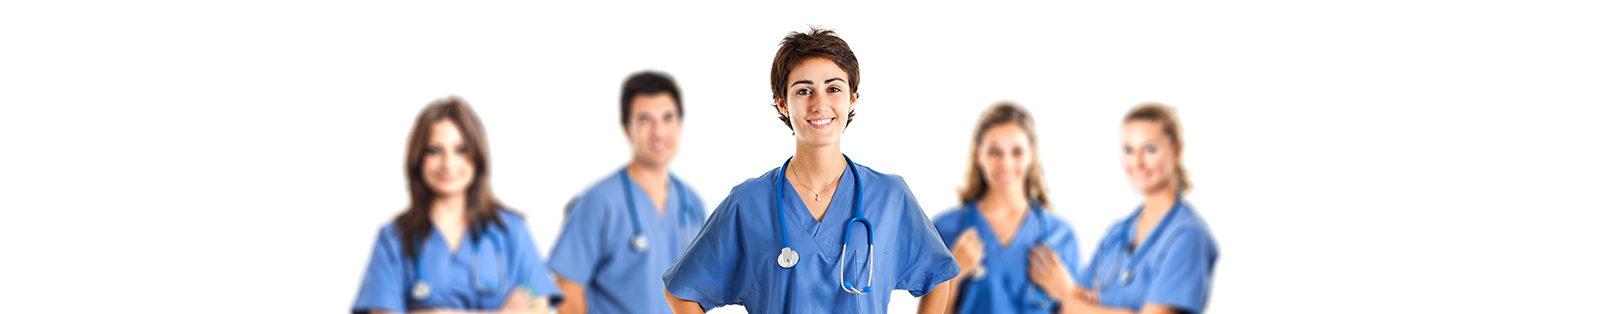 Nurses in scrubs.